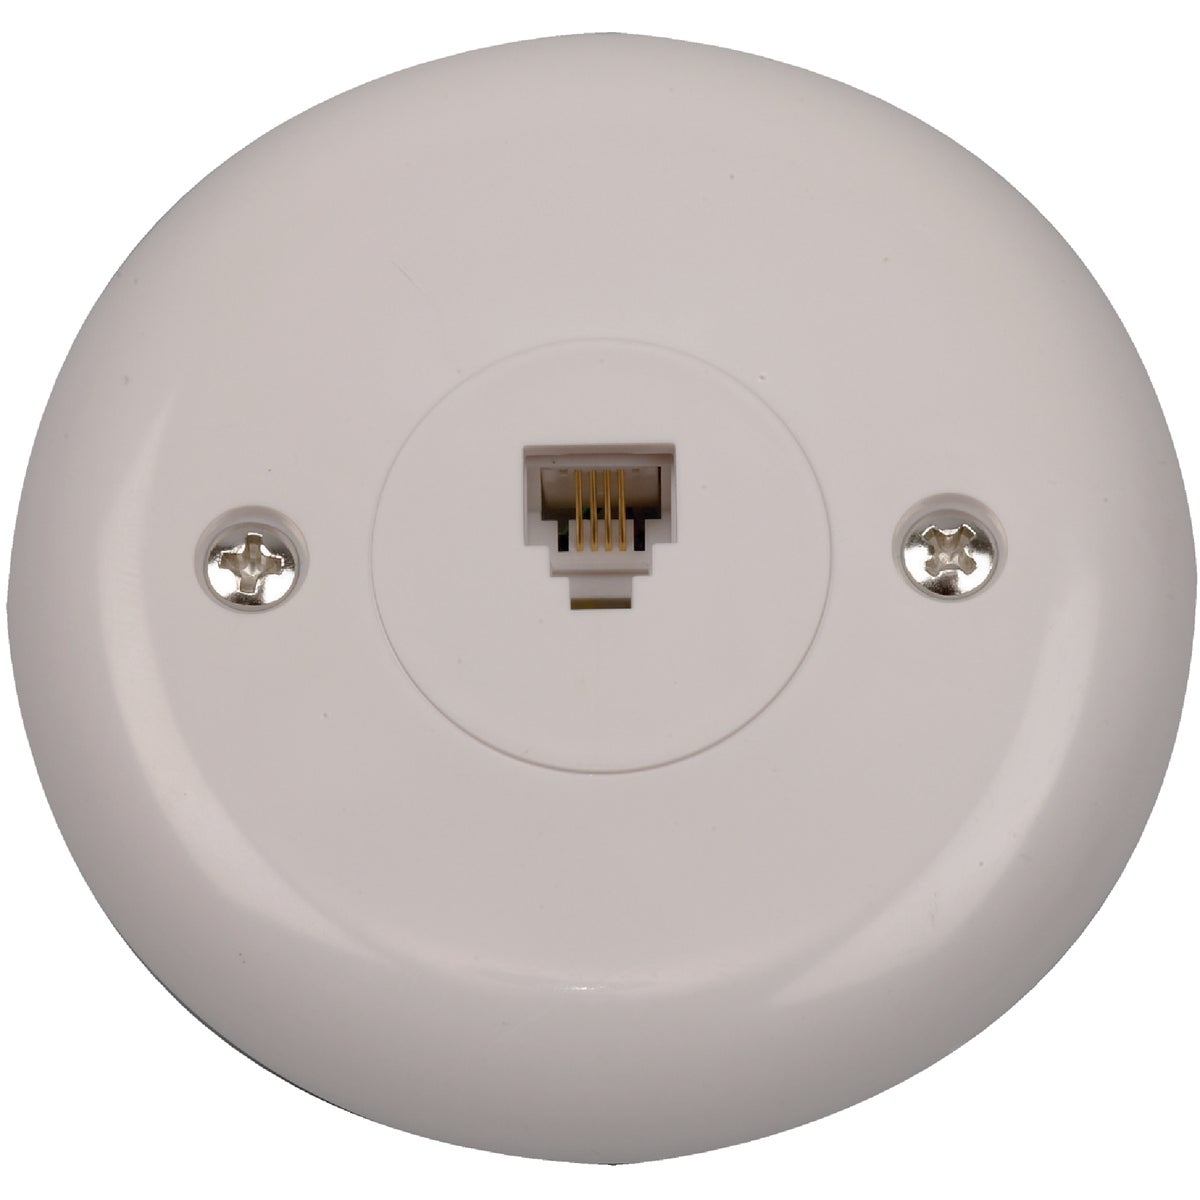 WHT ROUND PHONE JACK - TP248WHR by Audiovox Accessories